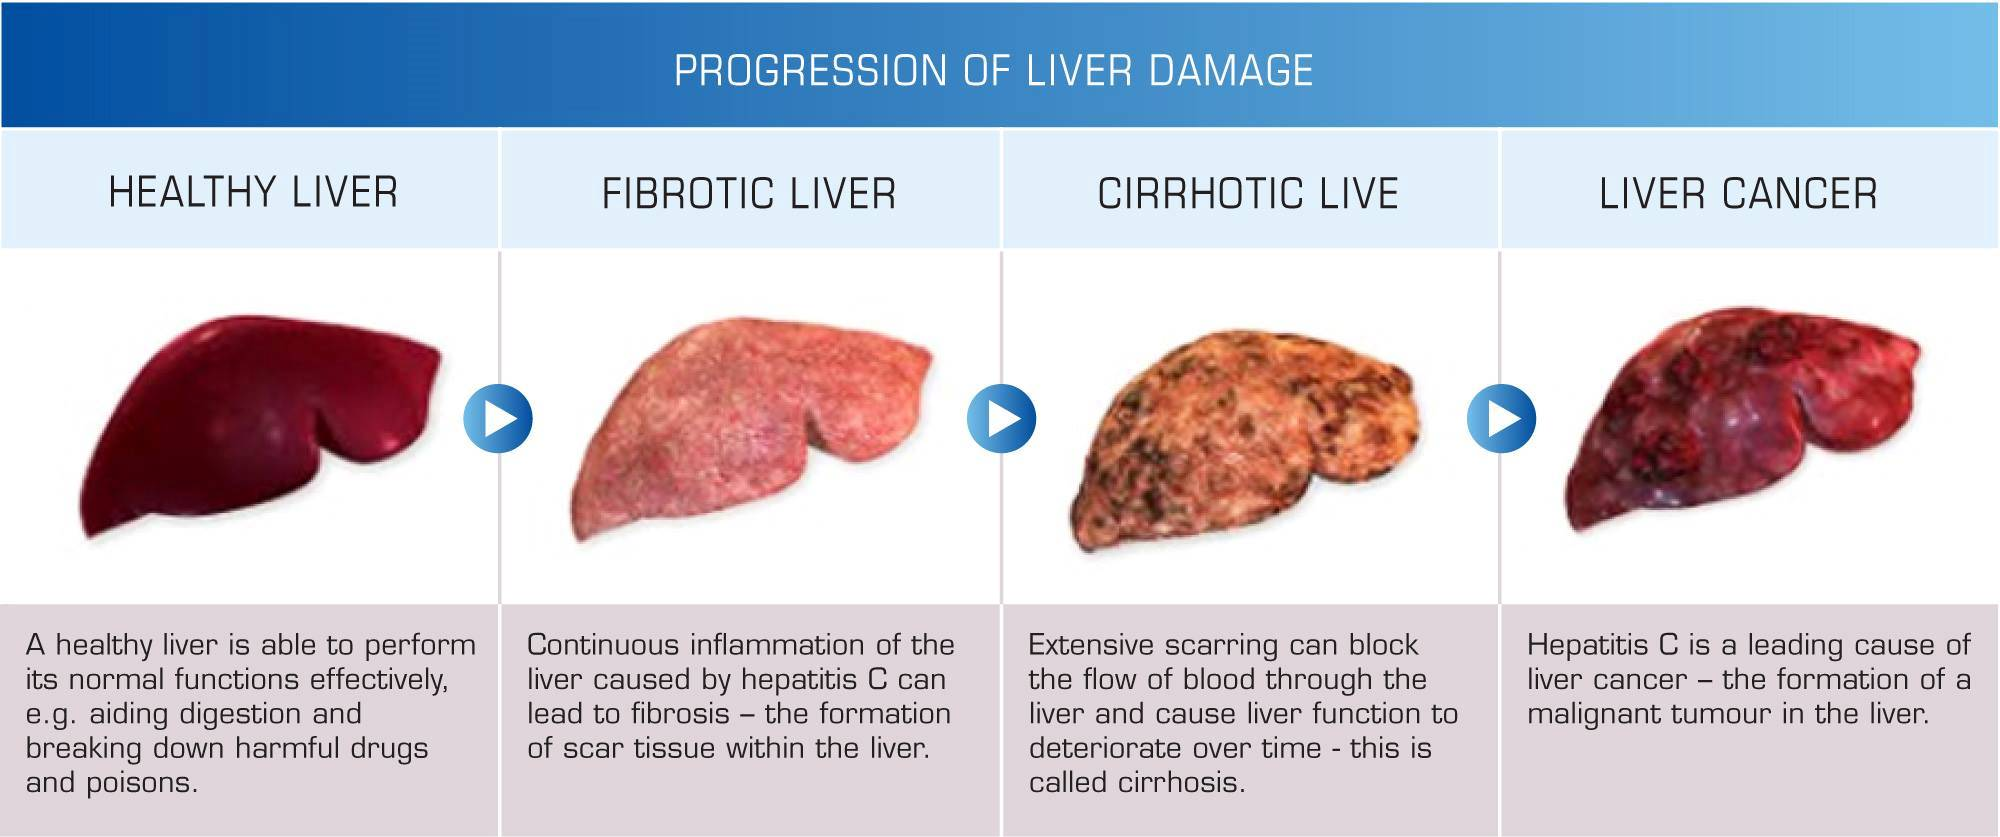 Liver fully recovers from a low protein diet